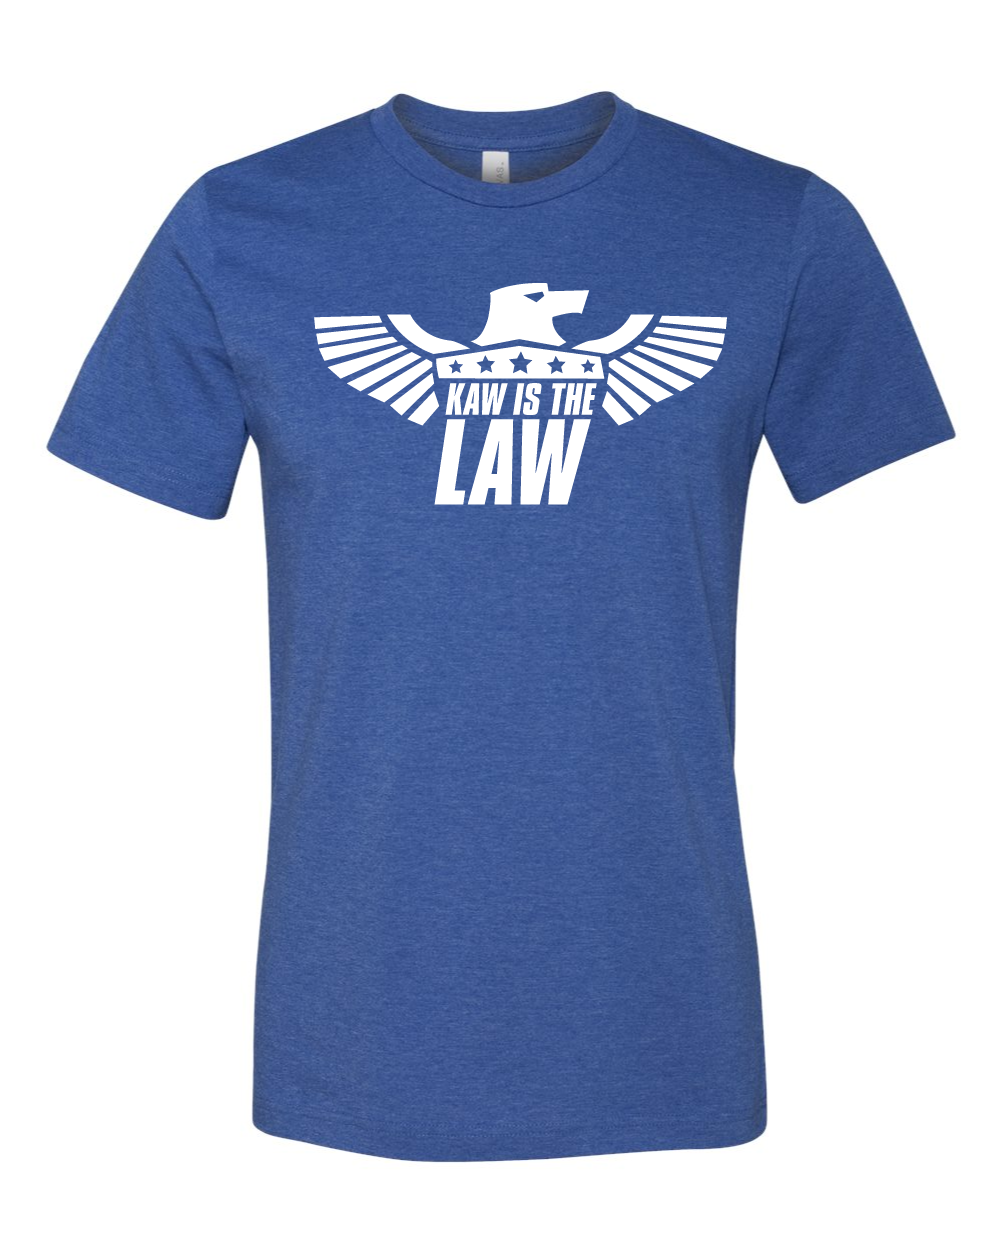 KAW is the LAW- Tee